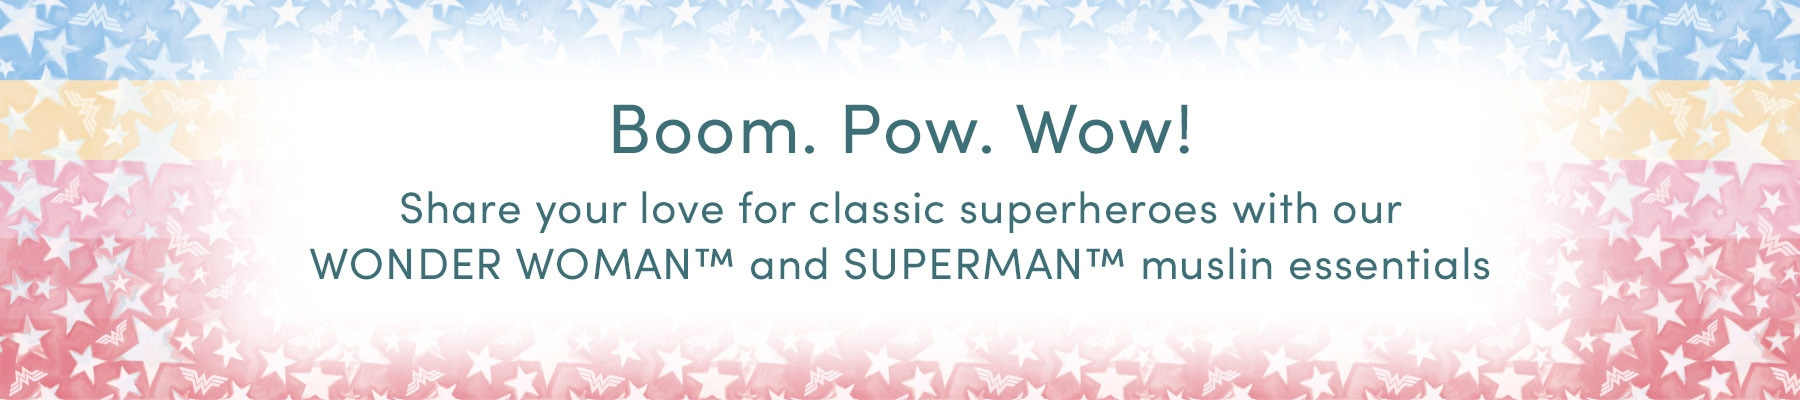 Superheroes muslin collection for babies - Aden and Anais